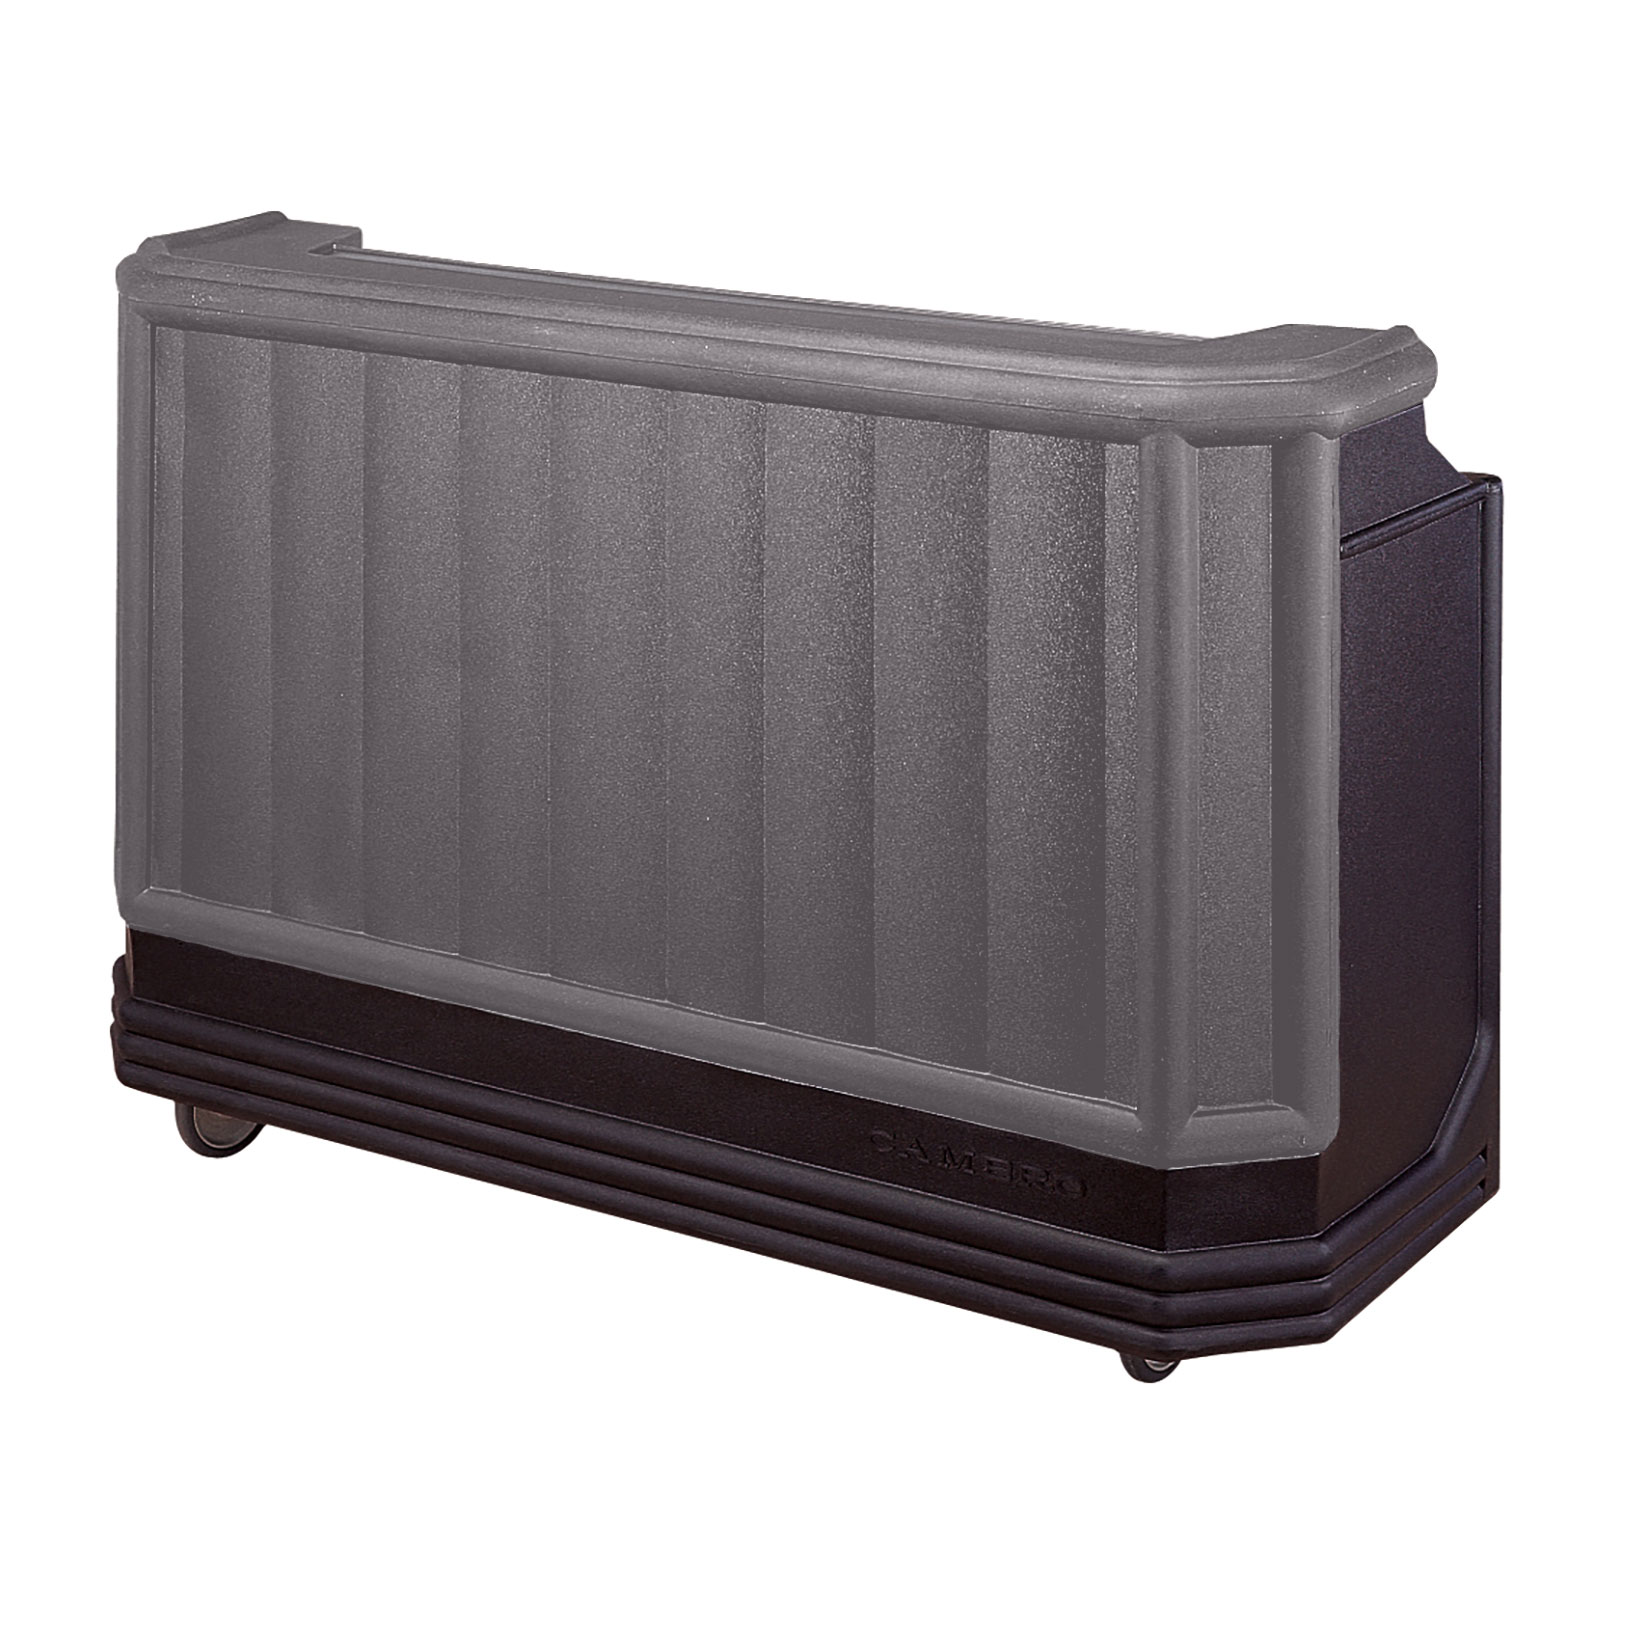 Cambro BAR730DX420 portable bars